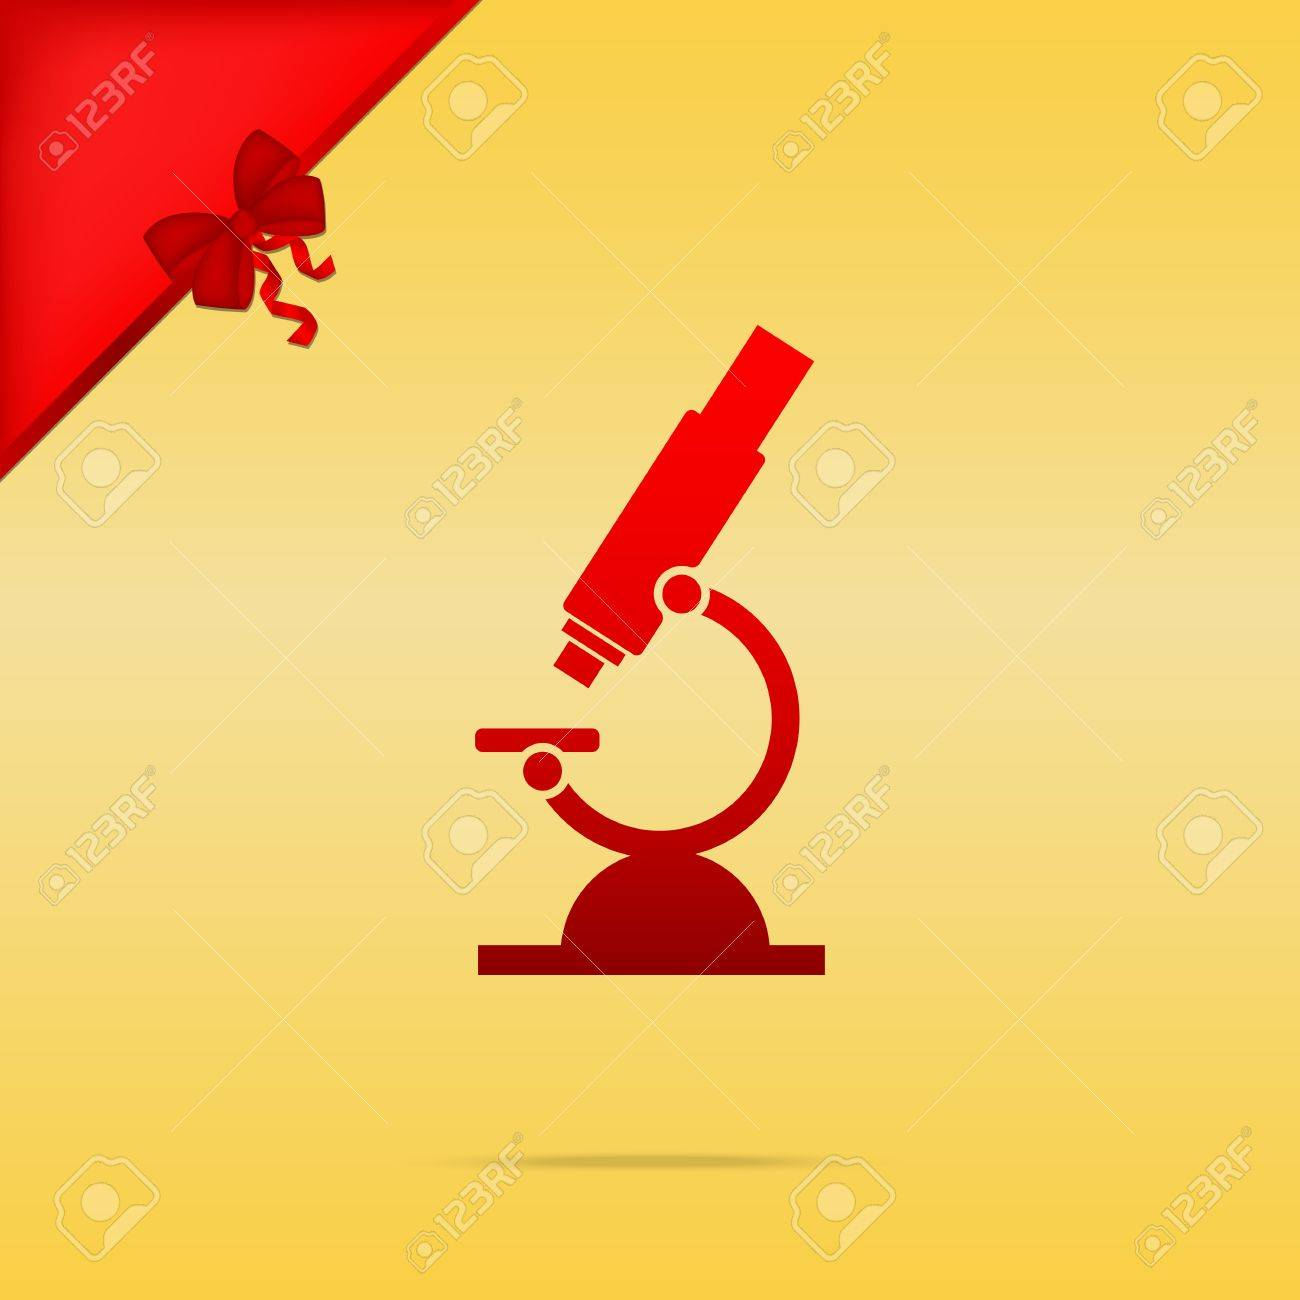 Chemistry microscope sign for laboratory cristmas design red chemistry microscope sign for laboratory cristmas design red icon on gold background stock vector biocorpaavc Gallery